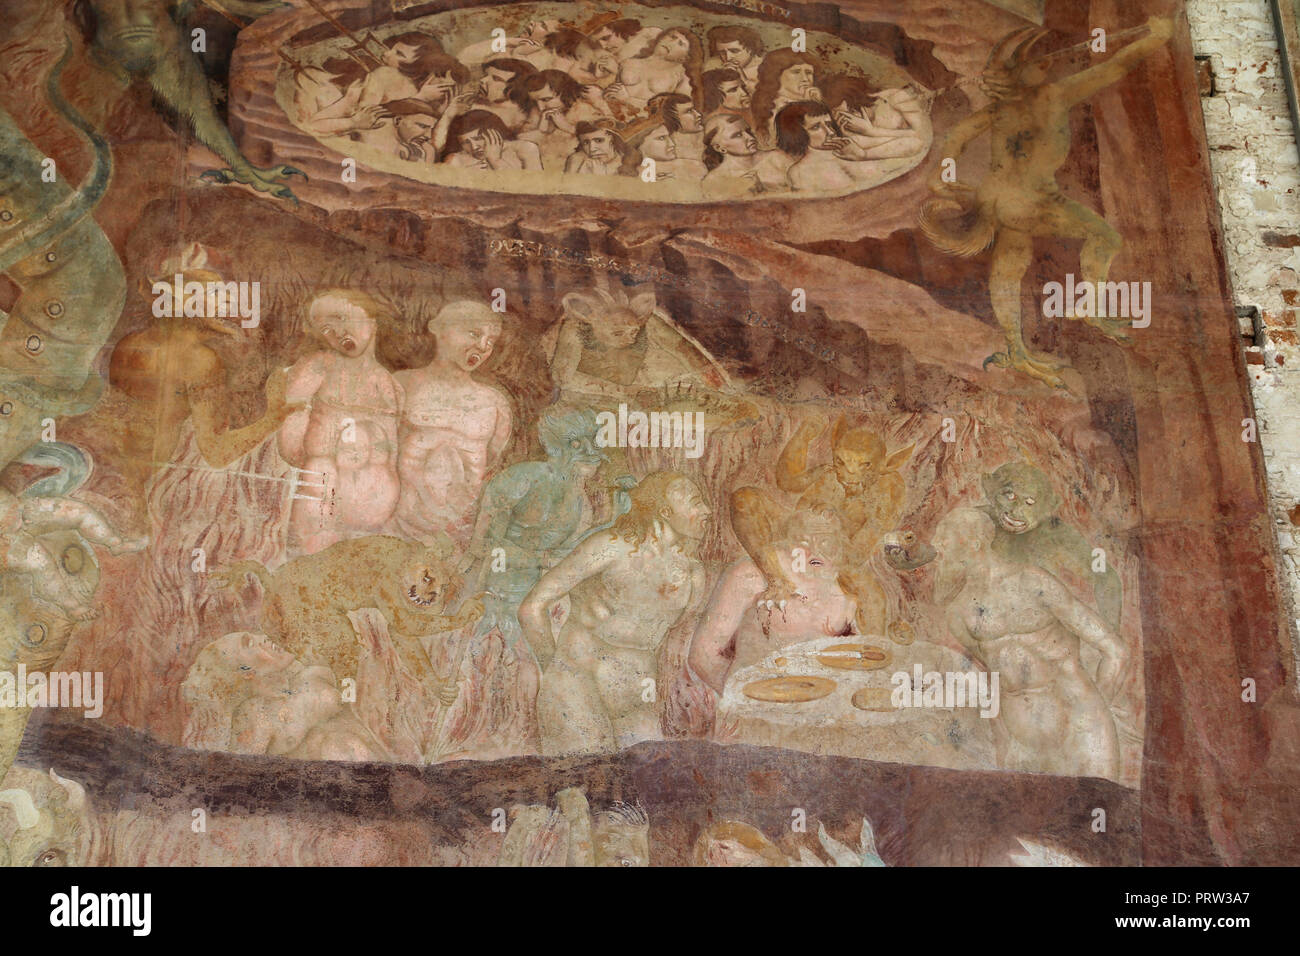 Buonamico Buffalmacco. The Triumph of Death. Detail 'The Hell'. Torments. 1338-39. Camposanto. Pisa. Italy. - Stock Image